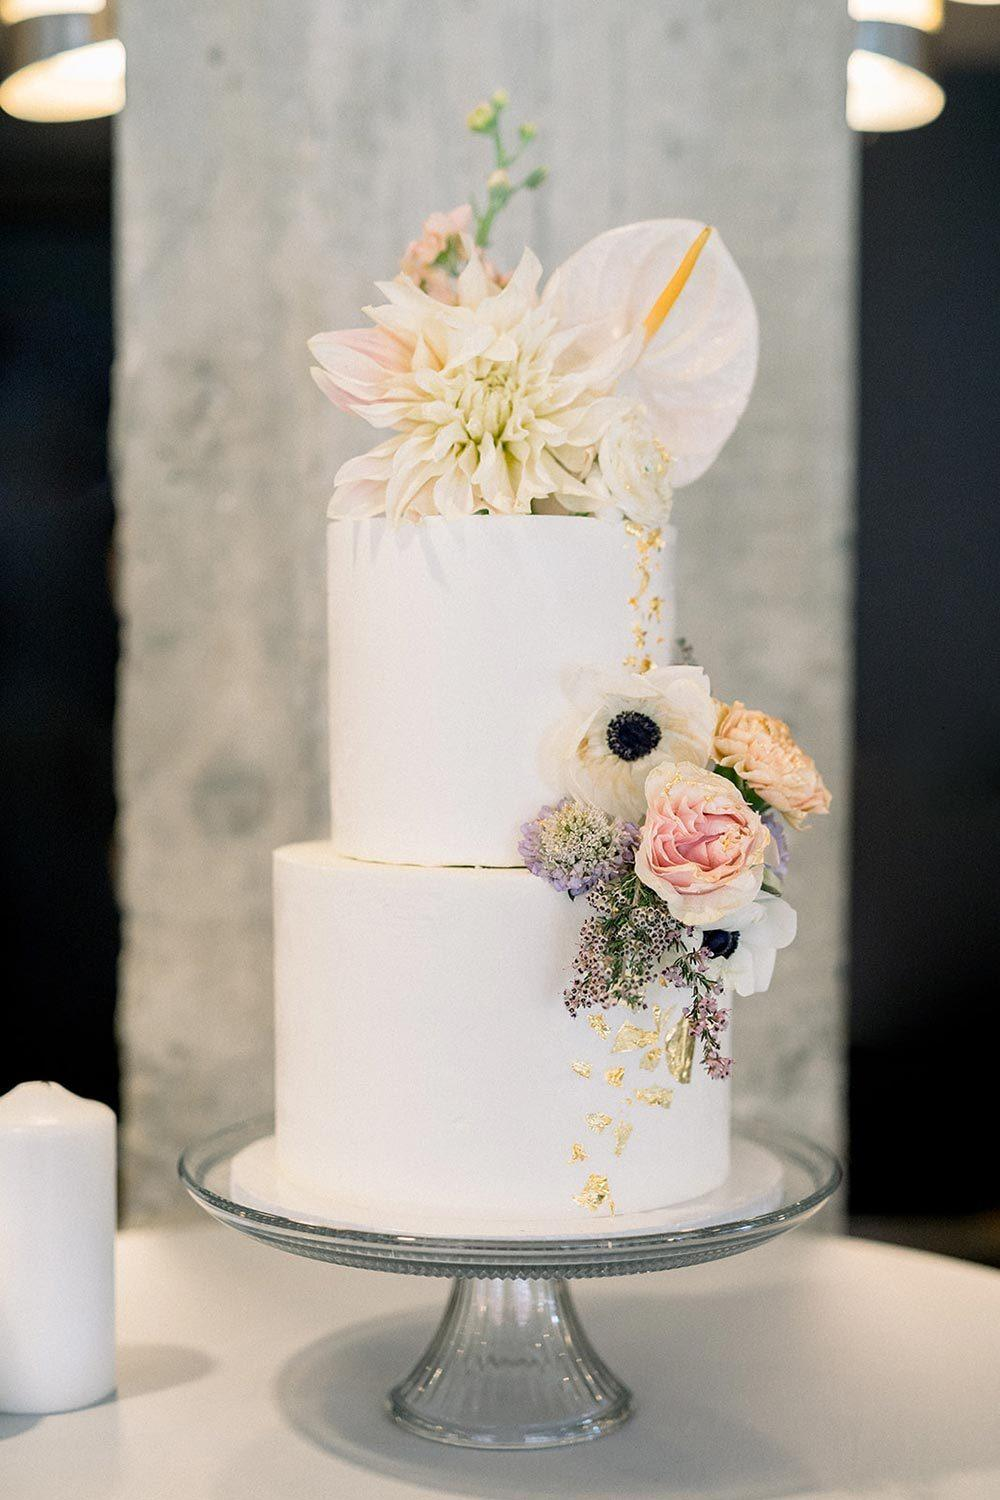 modern wedding cake with anemones, anthuriums and dahlias